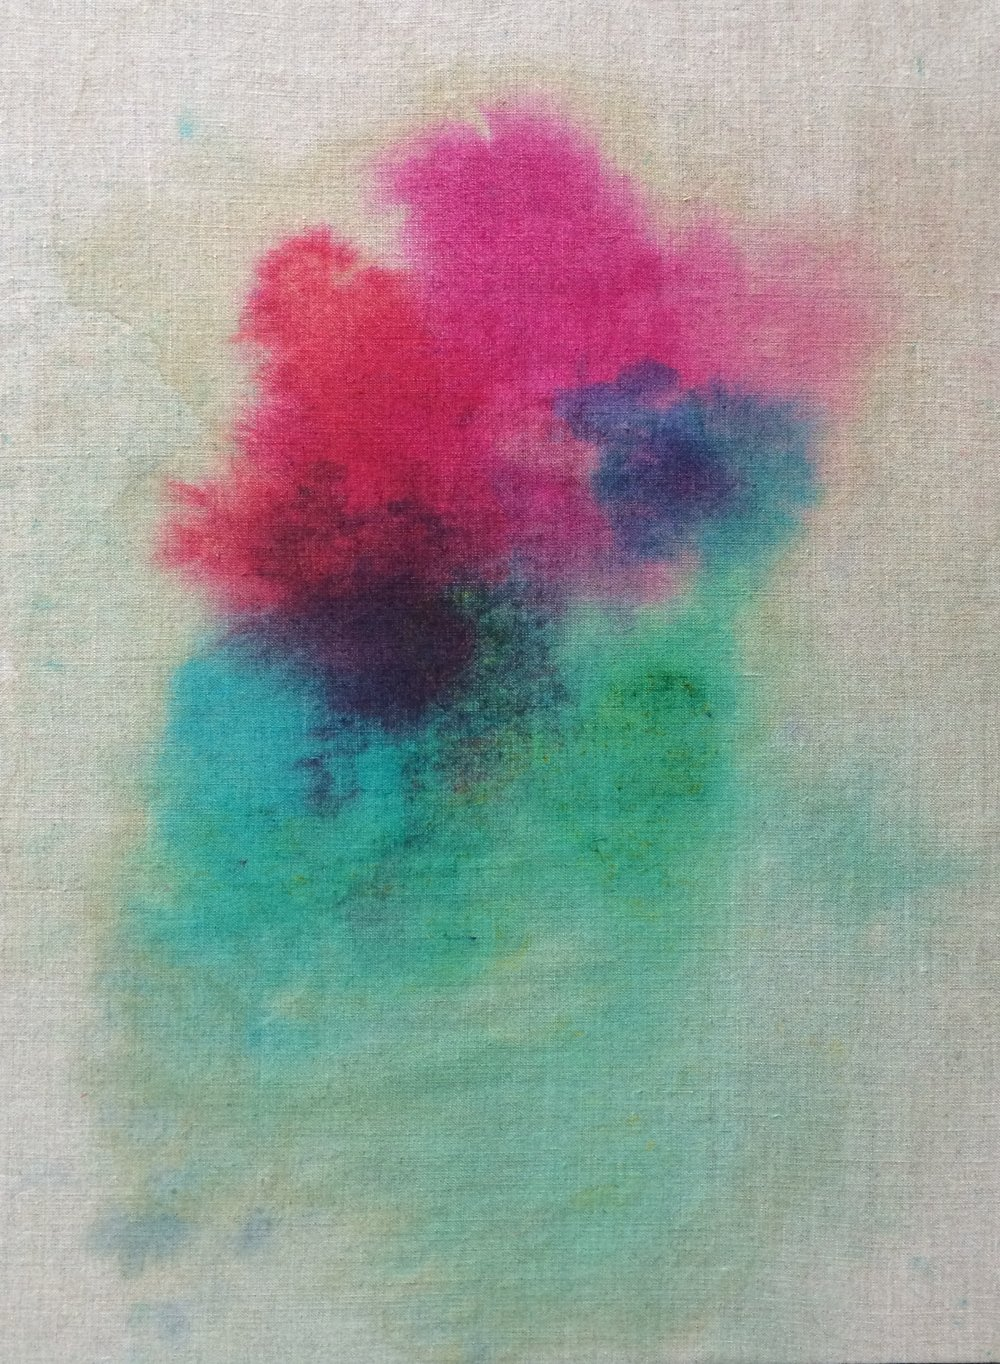 Fabric dye on unprimed canvas Buy $250 Rent $80 week